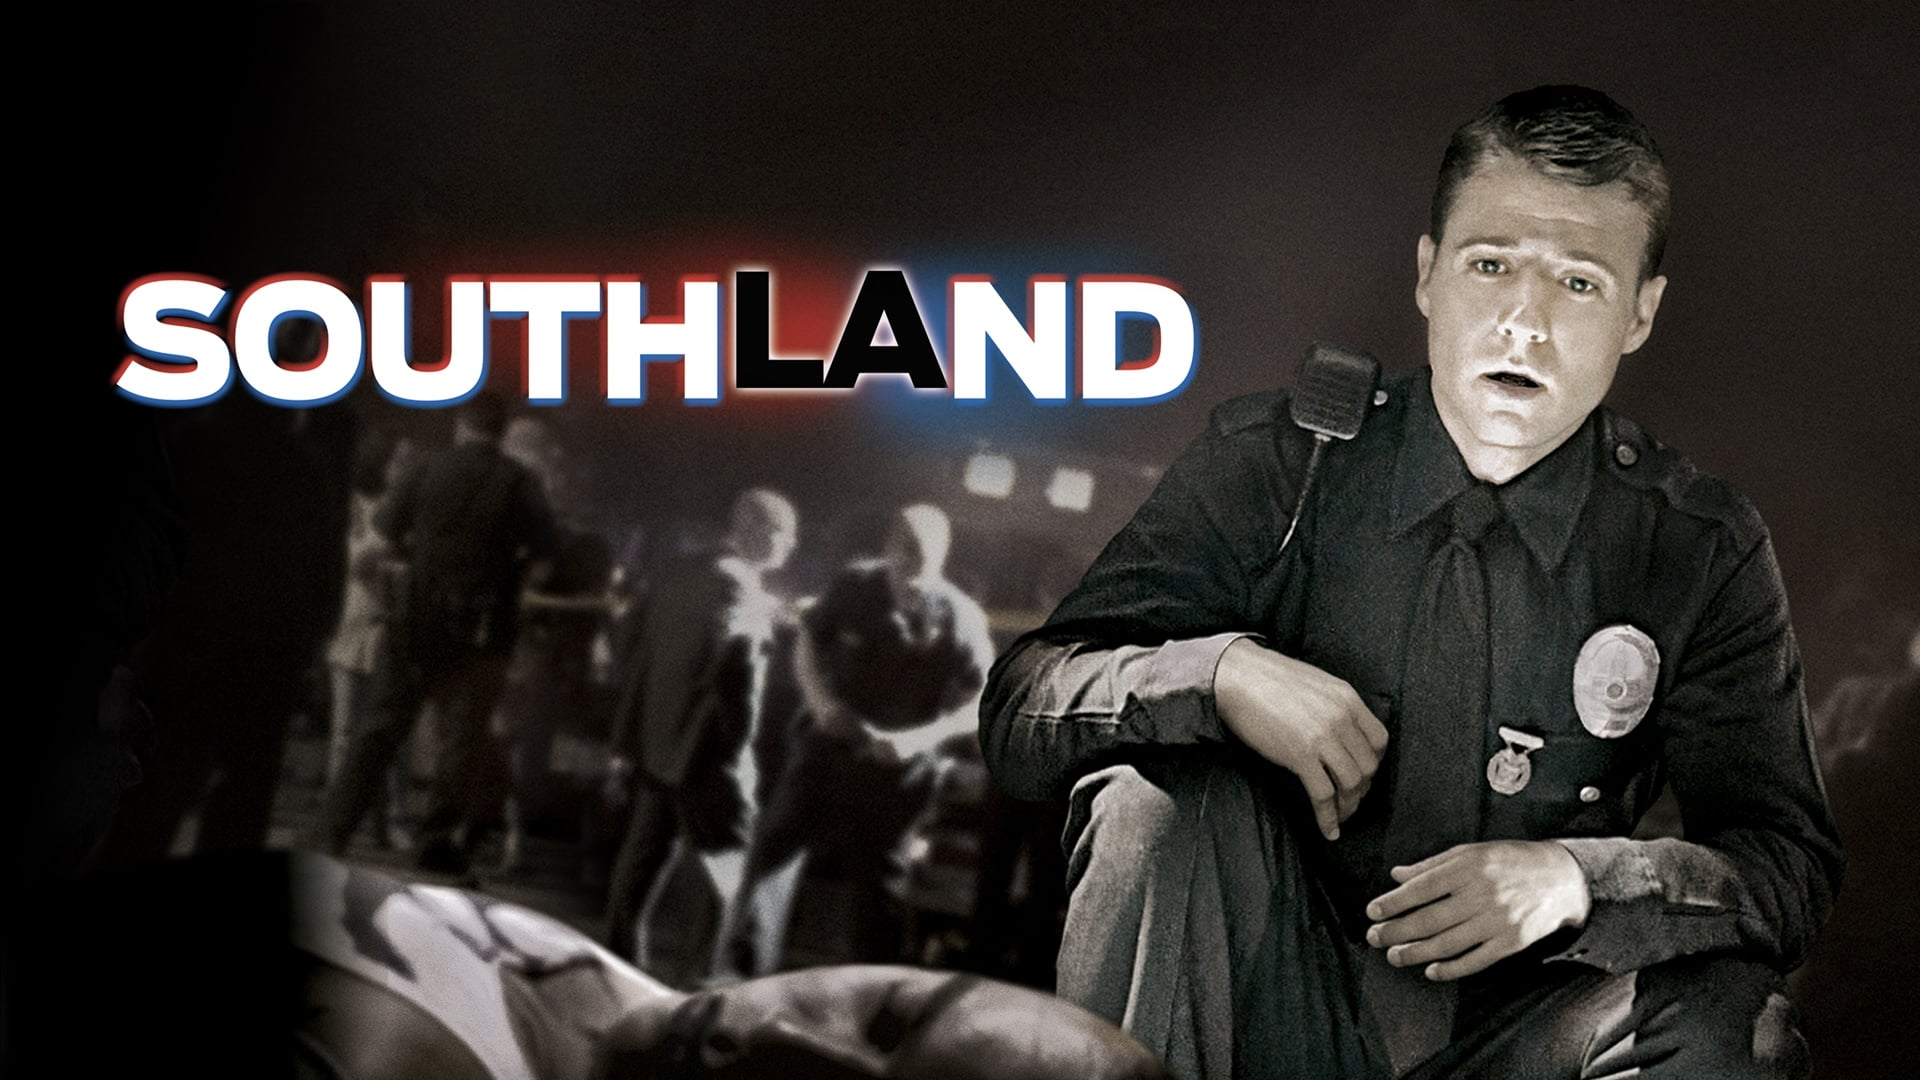 Tommorow, start season five Southland